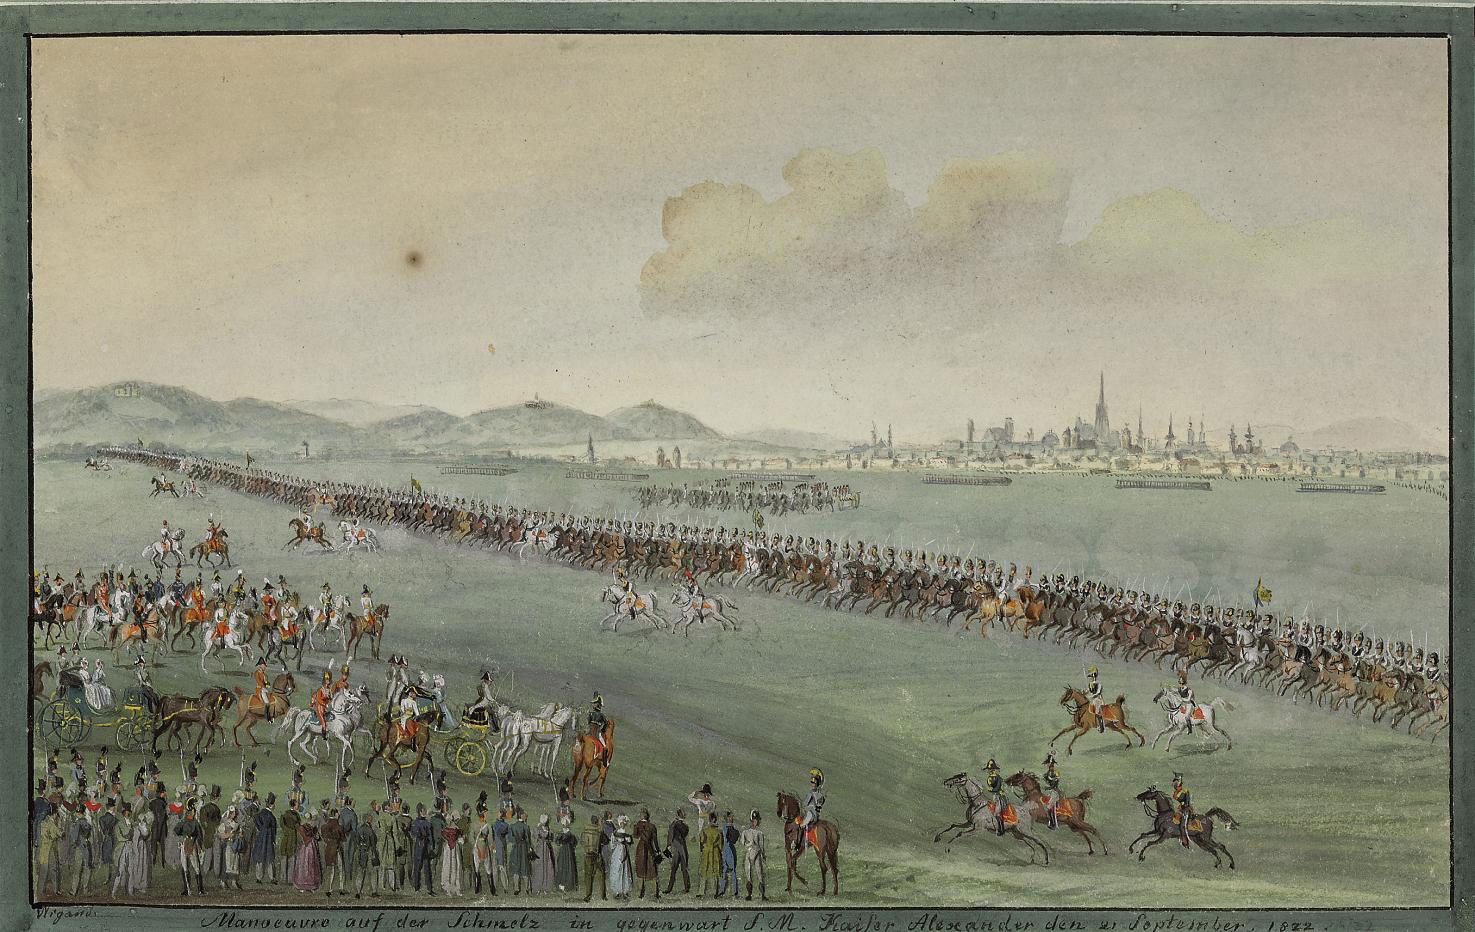 A military exercise in Vienna, 21 September 1822 in the presence of Tsar Alexander of Russia